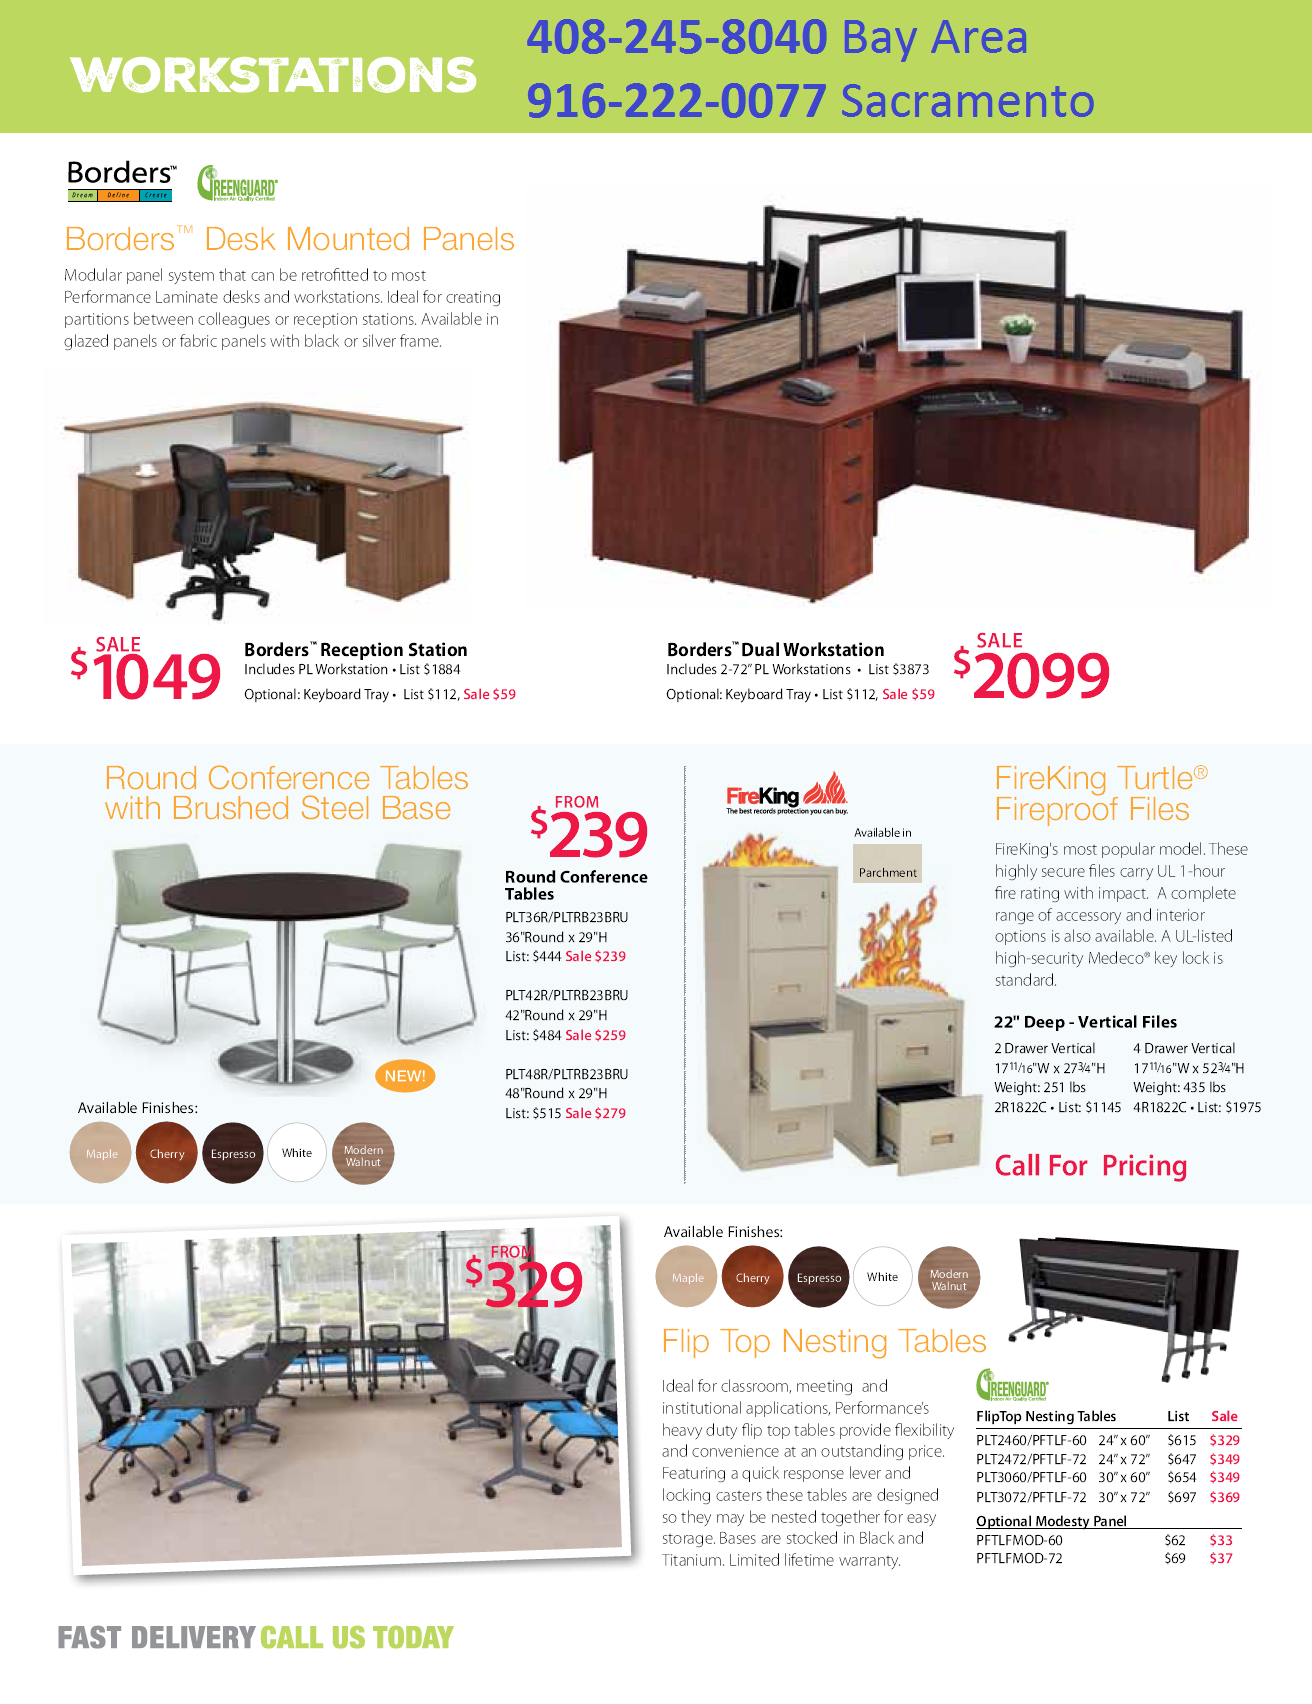 logo cubicles office chairs files office desks conference tables reception desks lobby furniture used furniture and much more